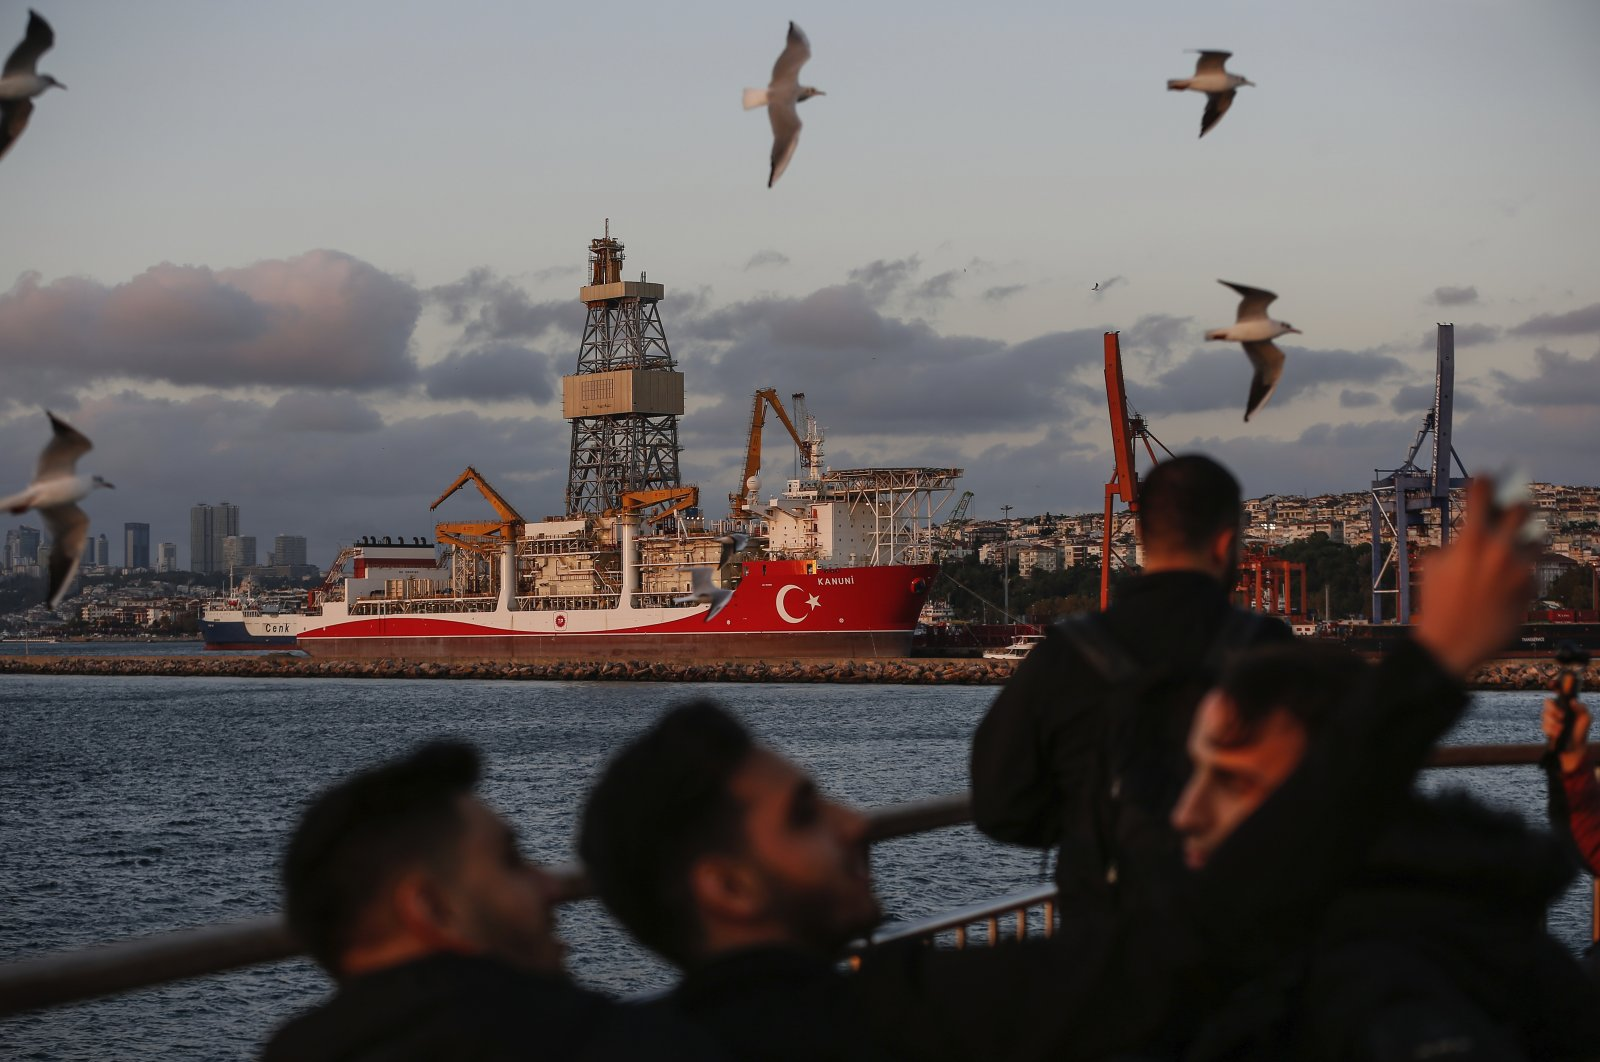 Turkish drilling ship Kanuni is seen docked for maintenance before heading to the Black Sea for drilling operations, at the port of Haydarpaşa in Istanbul, Turkey, Oct. 21, 2020. (AP Photo)